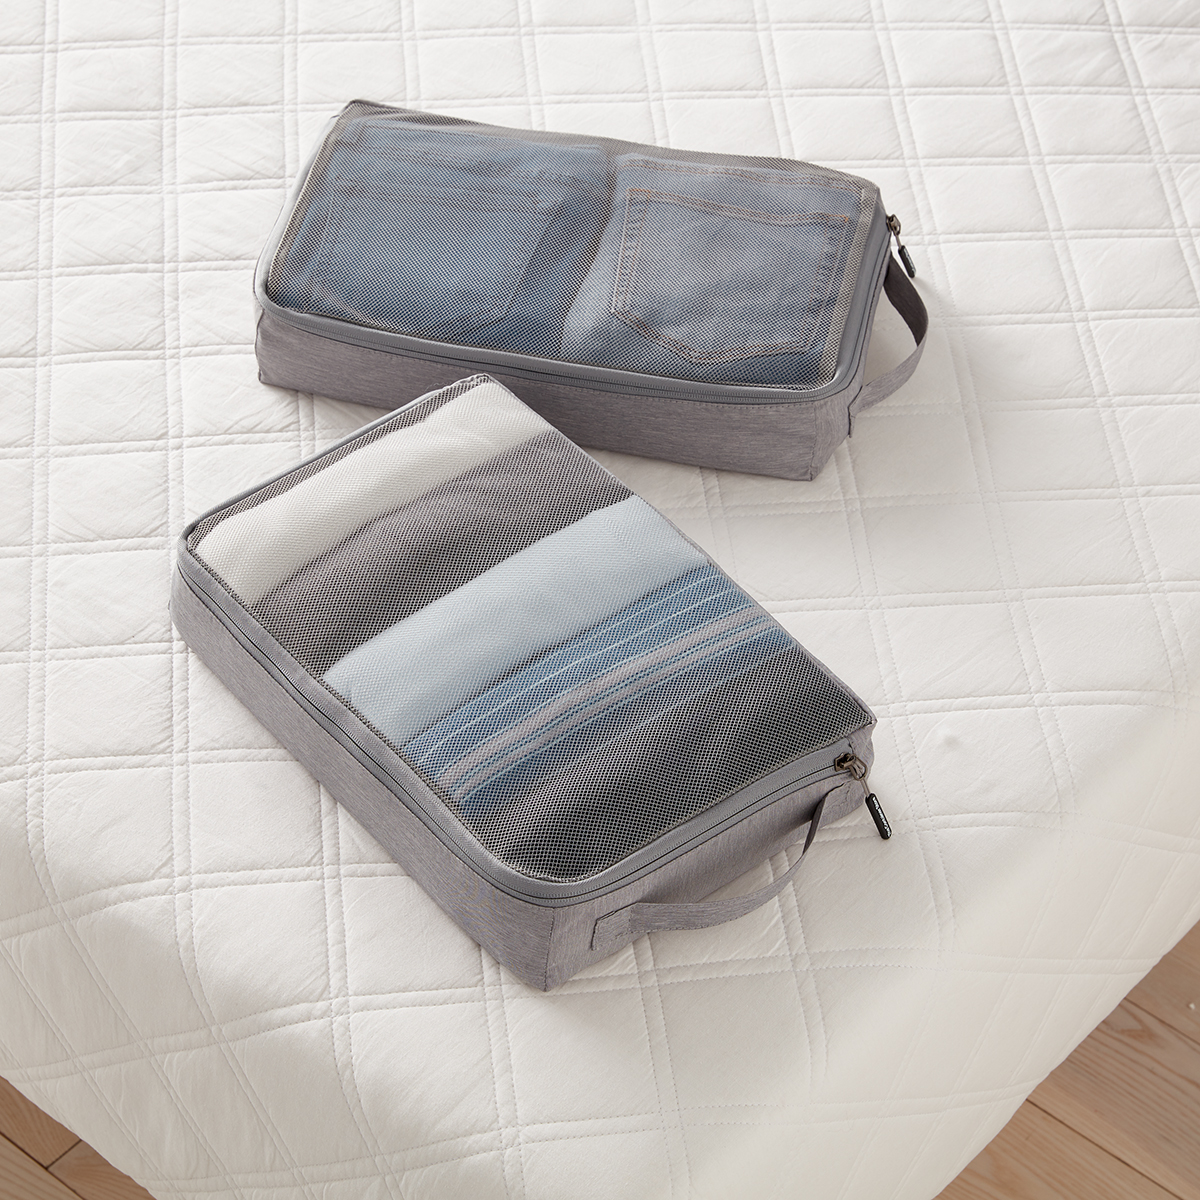 Heather Grey Large Packing Cubes Set of 2